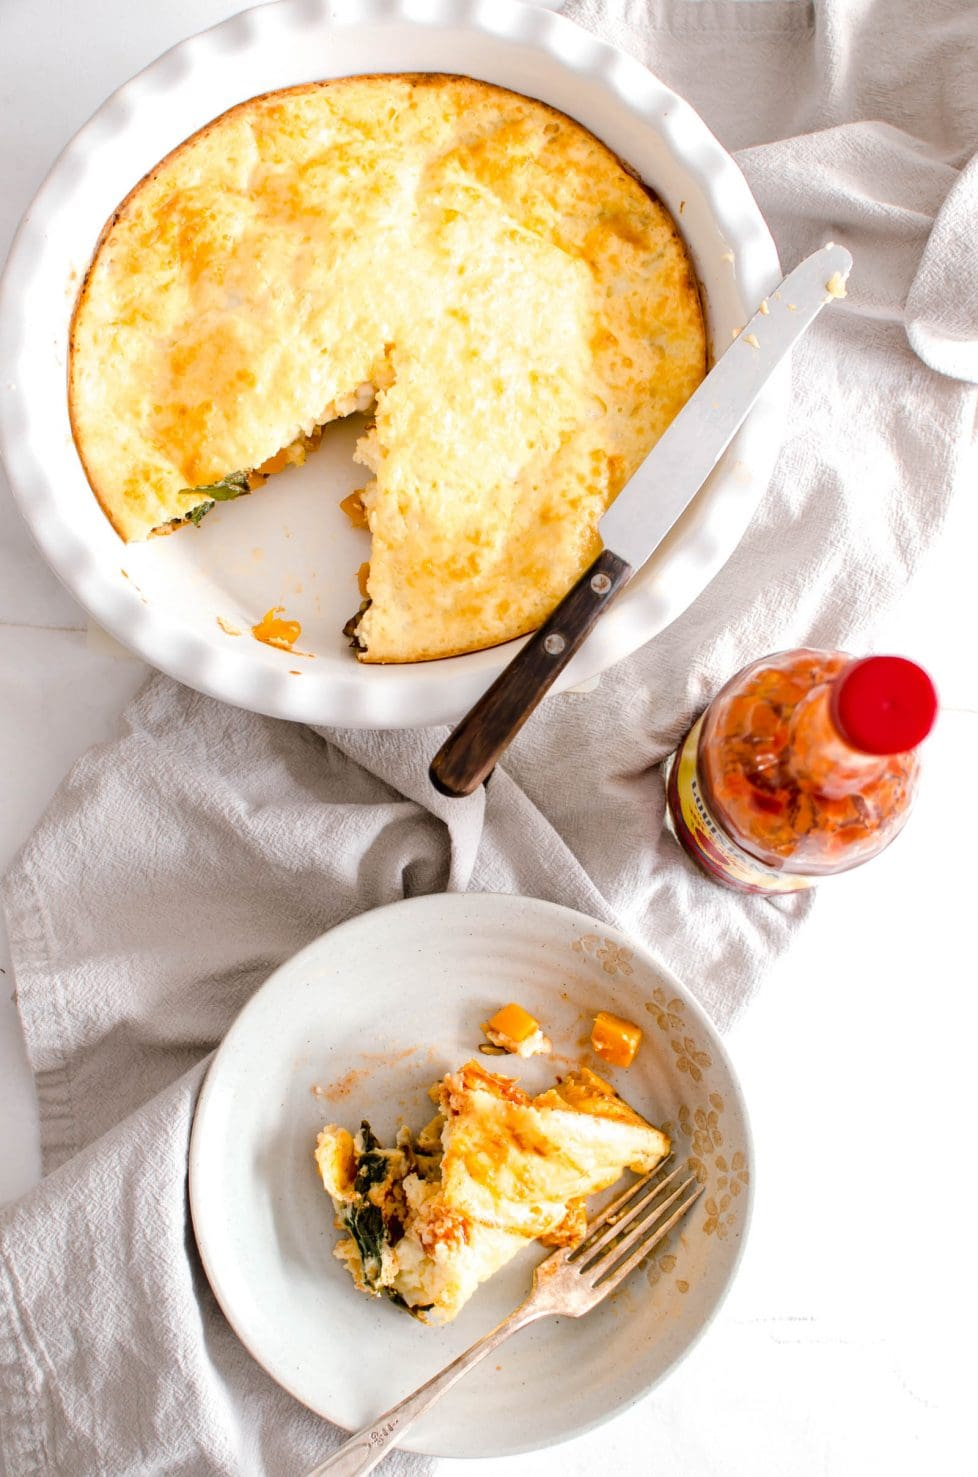 This recipe for Crustless Winter Veggie Quiche is a healthy, lightened up version of a breakfast and brunch favorite. It's filled with winter veggies and can be modified to suit your tastes!